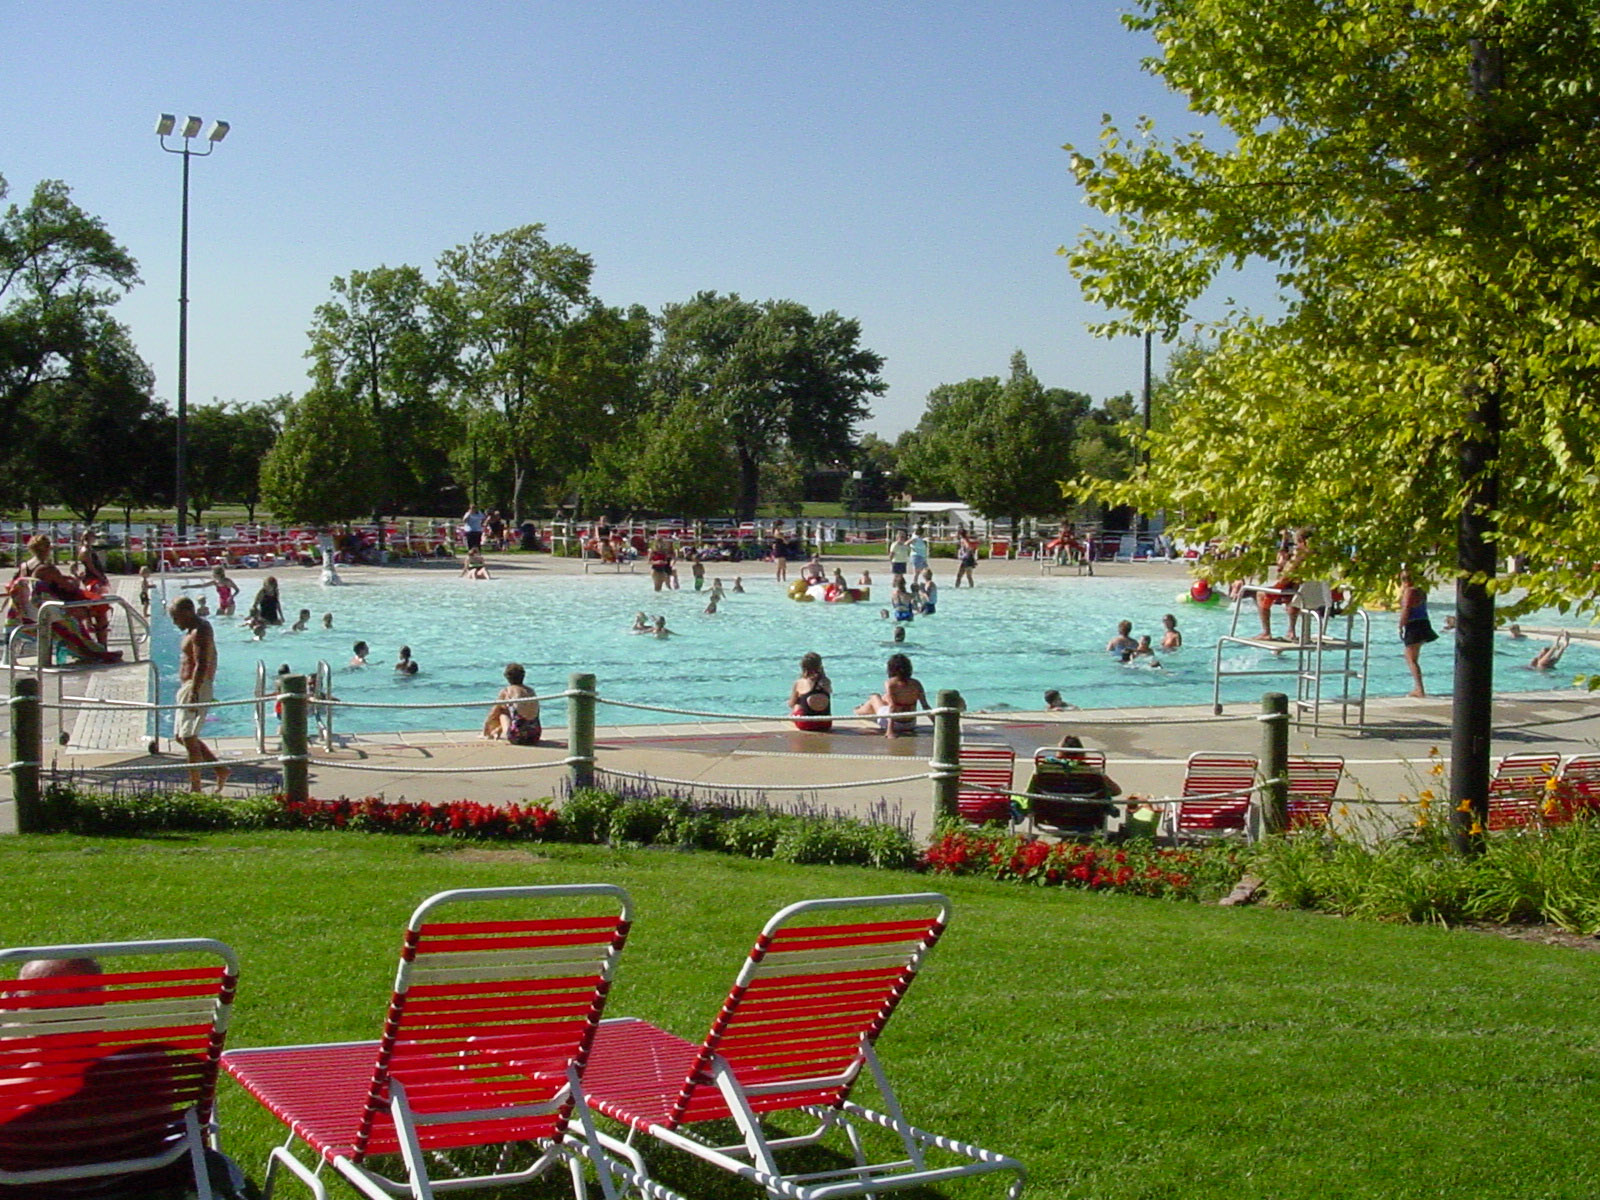 Terrace park city of sioux falls - Terrace park swimming pool sioux falls ...